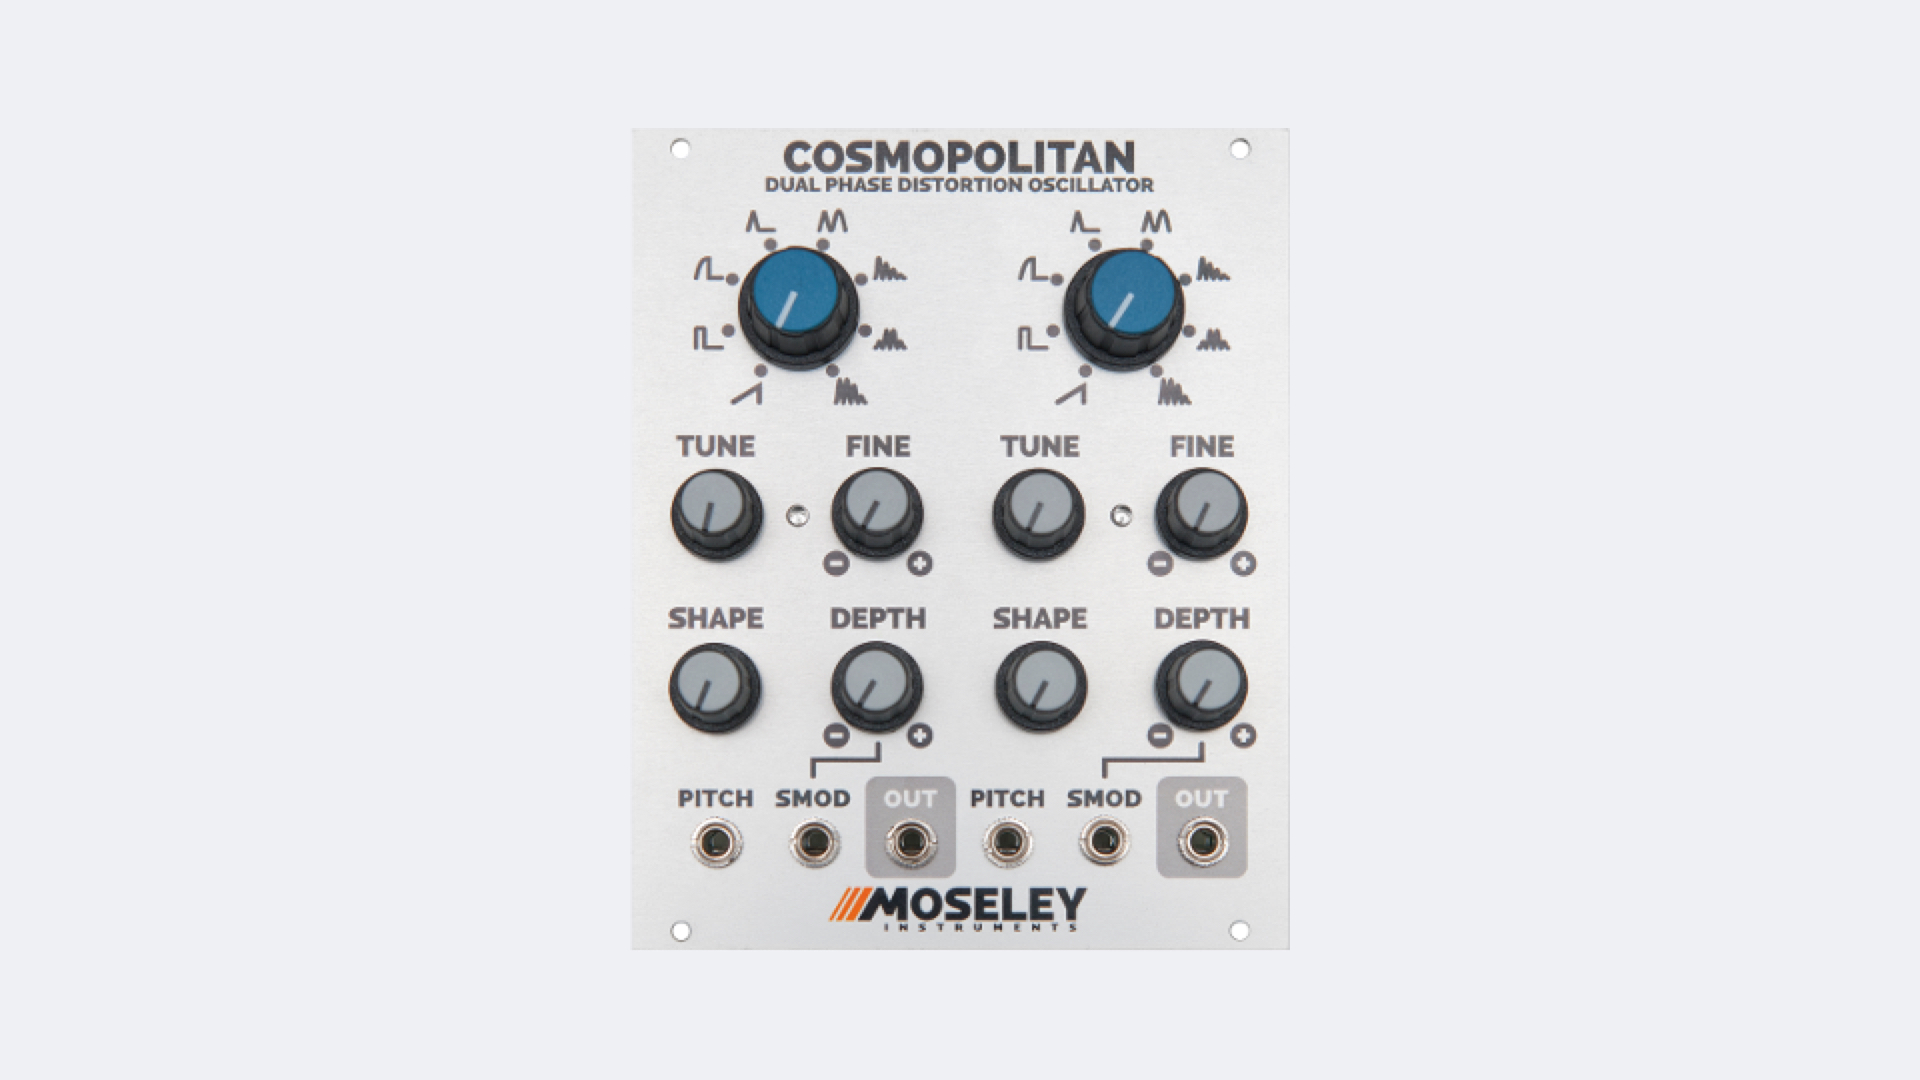 The Cosmopolitan Is A New Dual Phase Distortion Oscillator For Eurorack Audio Oscillators